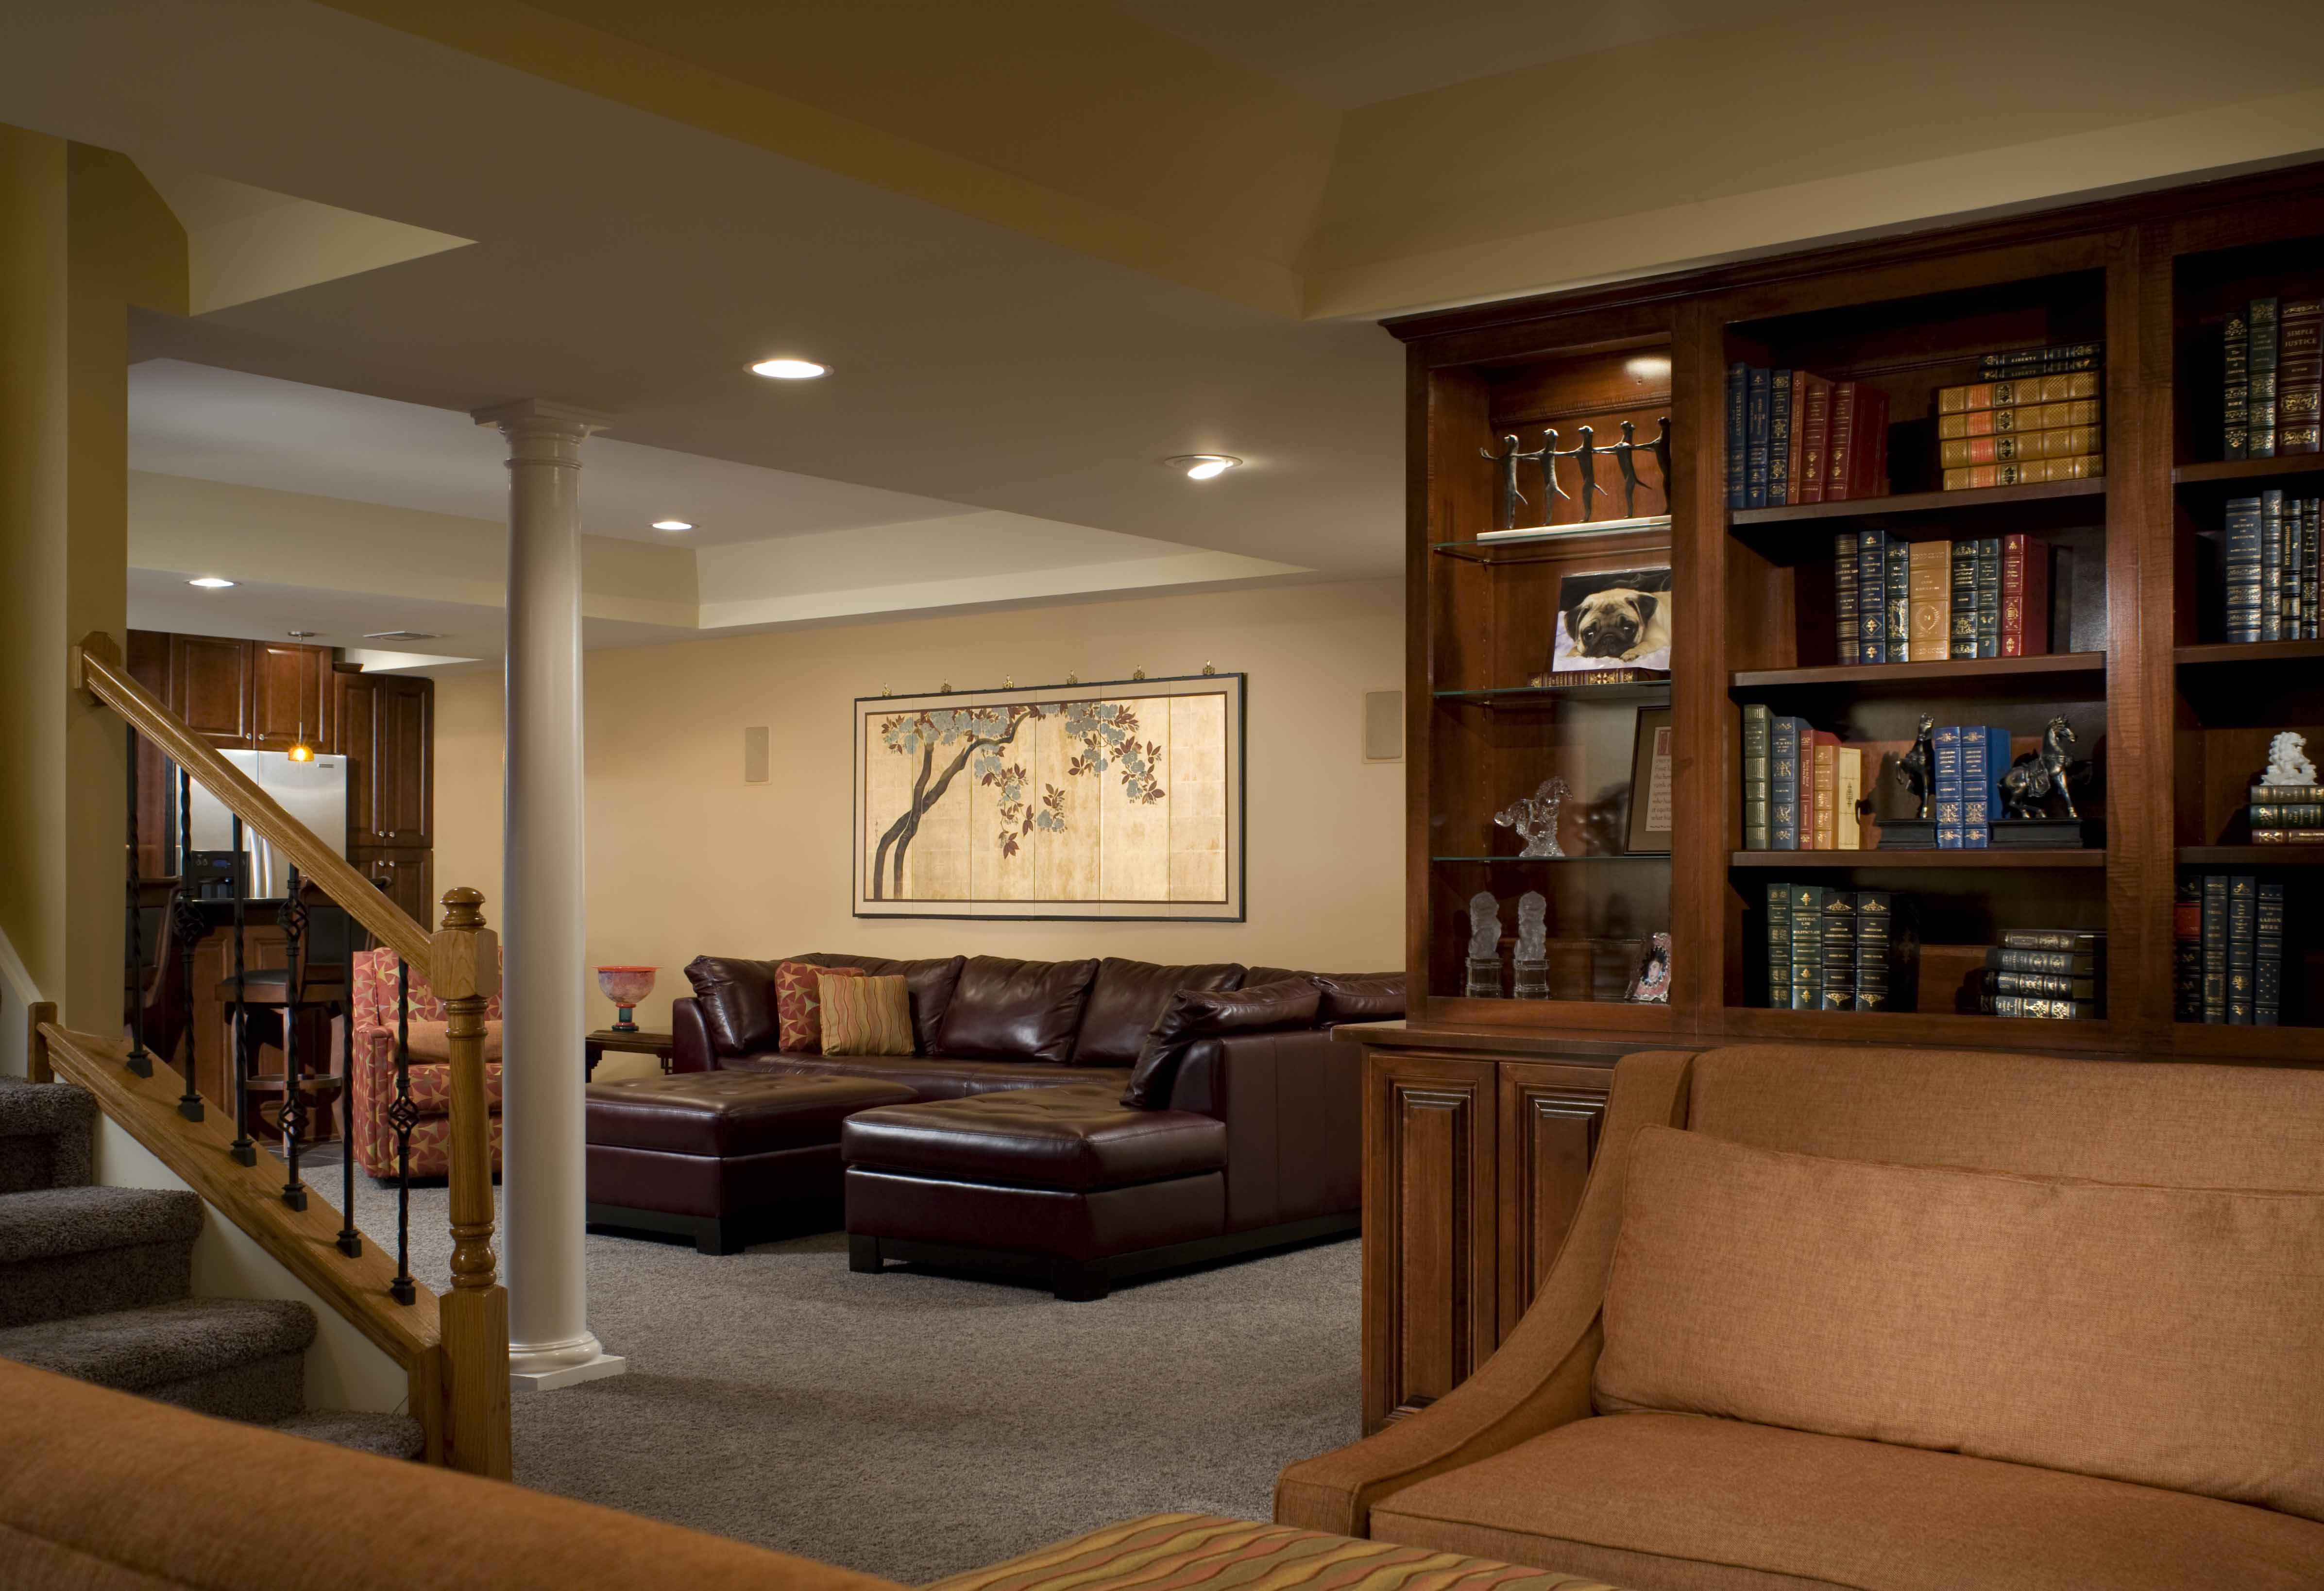 ... Home Makeover Improvement Remodeling. Living Space Basement Remodel  Wood Bookshelf Brown Couches Warm Color Grey Carpet